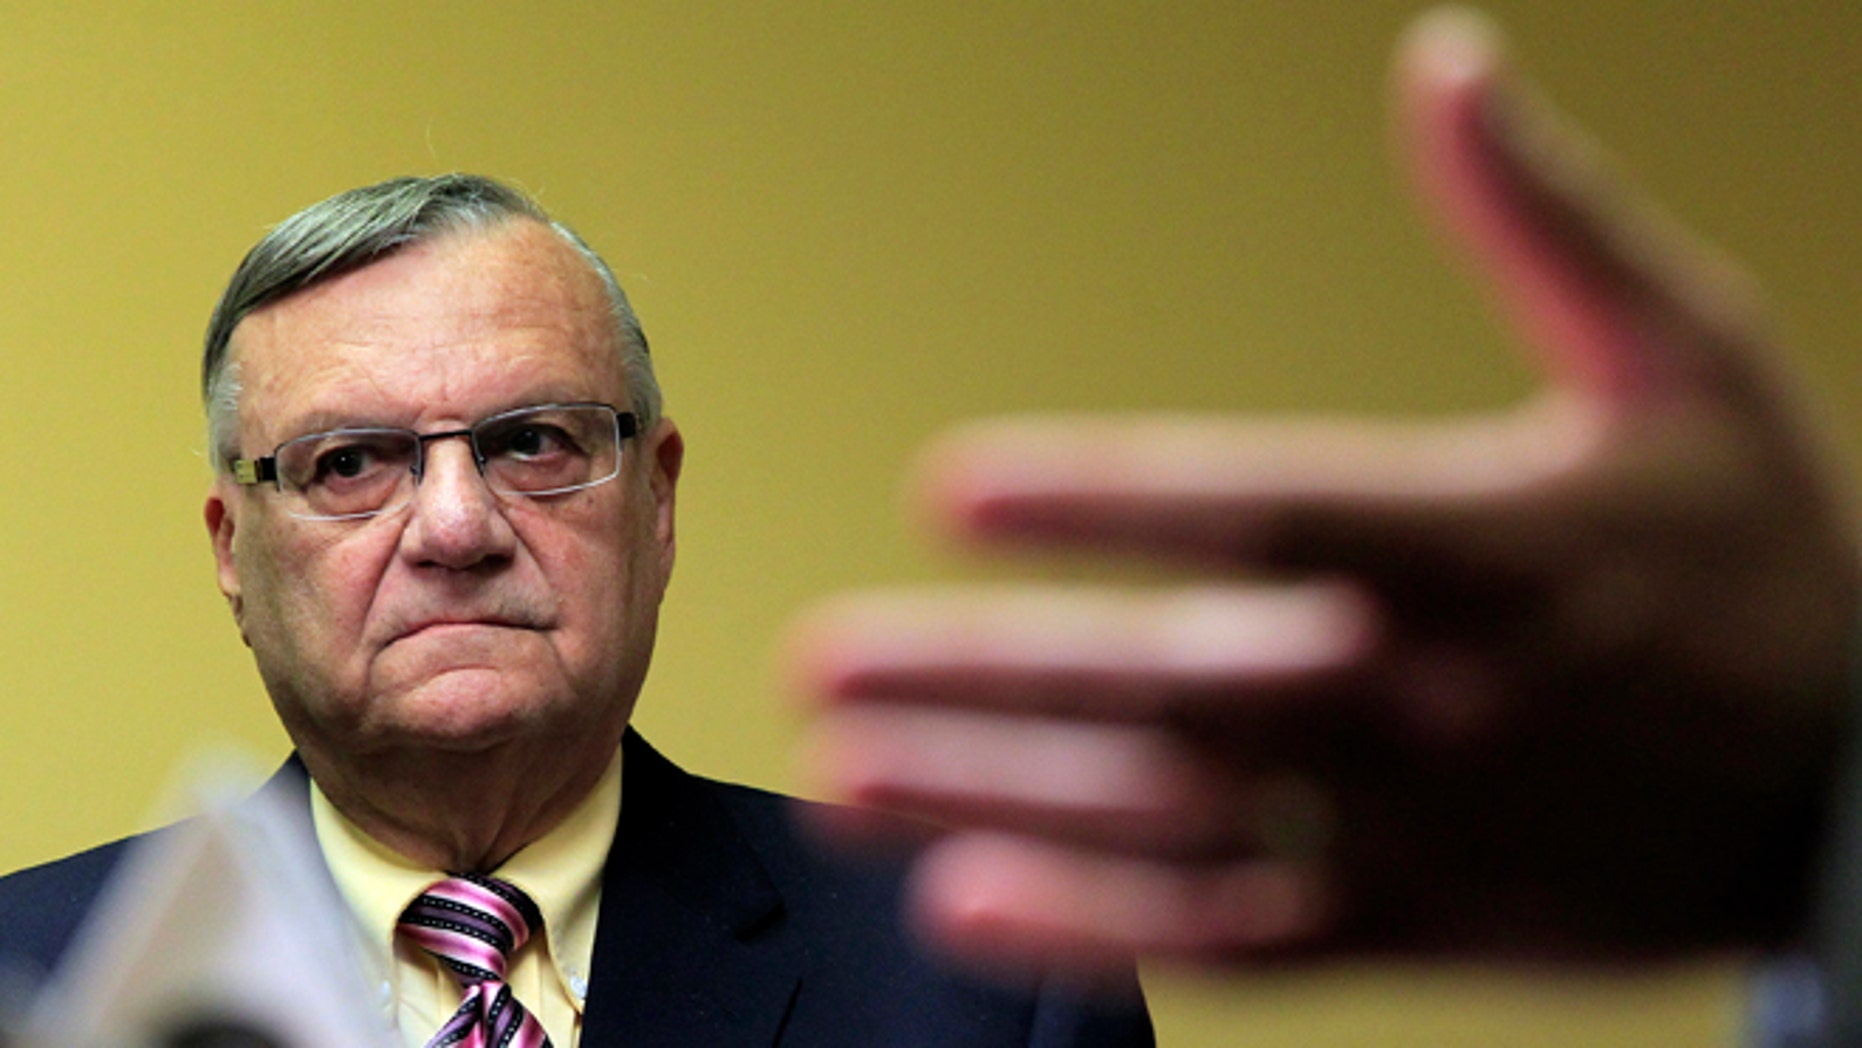 FILE - In this April 3, 2012 file photo, Maricopa County Sheriff Joe Arpaio listens to one of his attorneys during a news conference in Phoenix. Arpaio, who led the way for local police across the country to take up immigration enforcement, is reconsidering his crackdowns _ and other law enforcement officials who followed his lead are expected to eventually back away, too. (AP Photo/Ross D. Franklin, File)